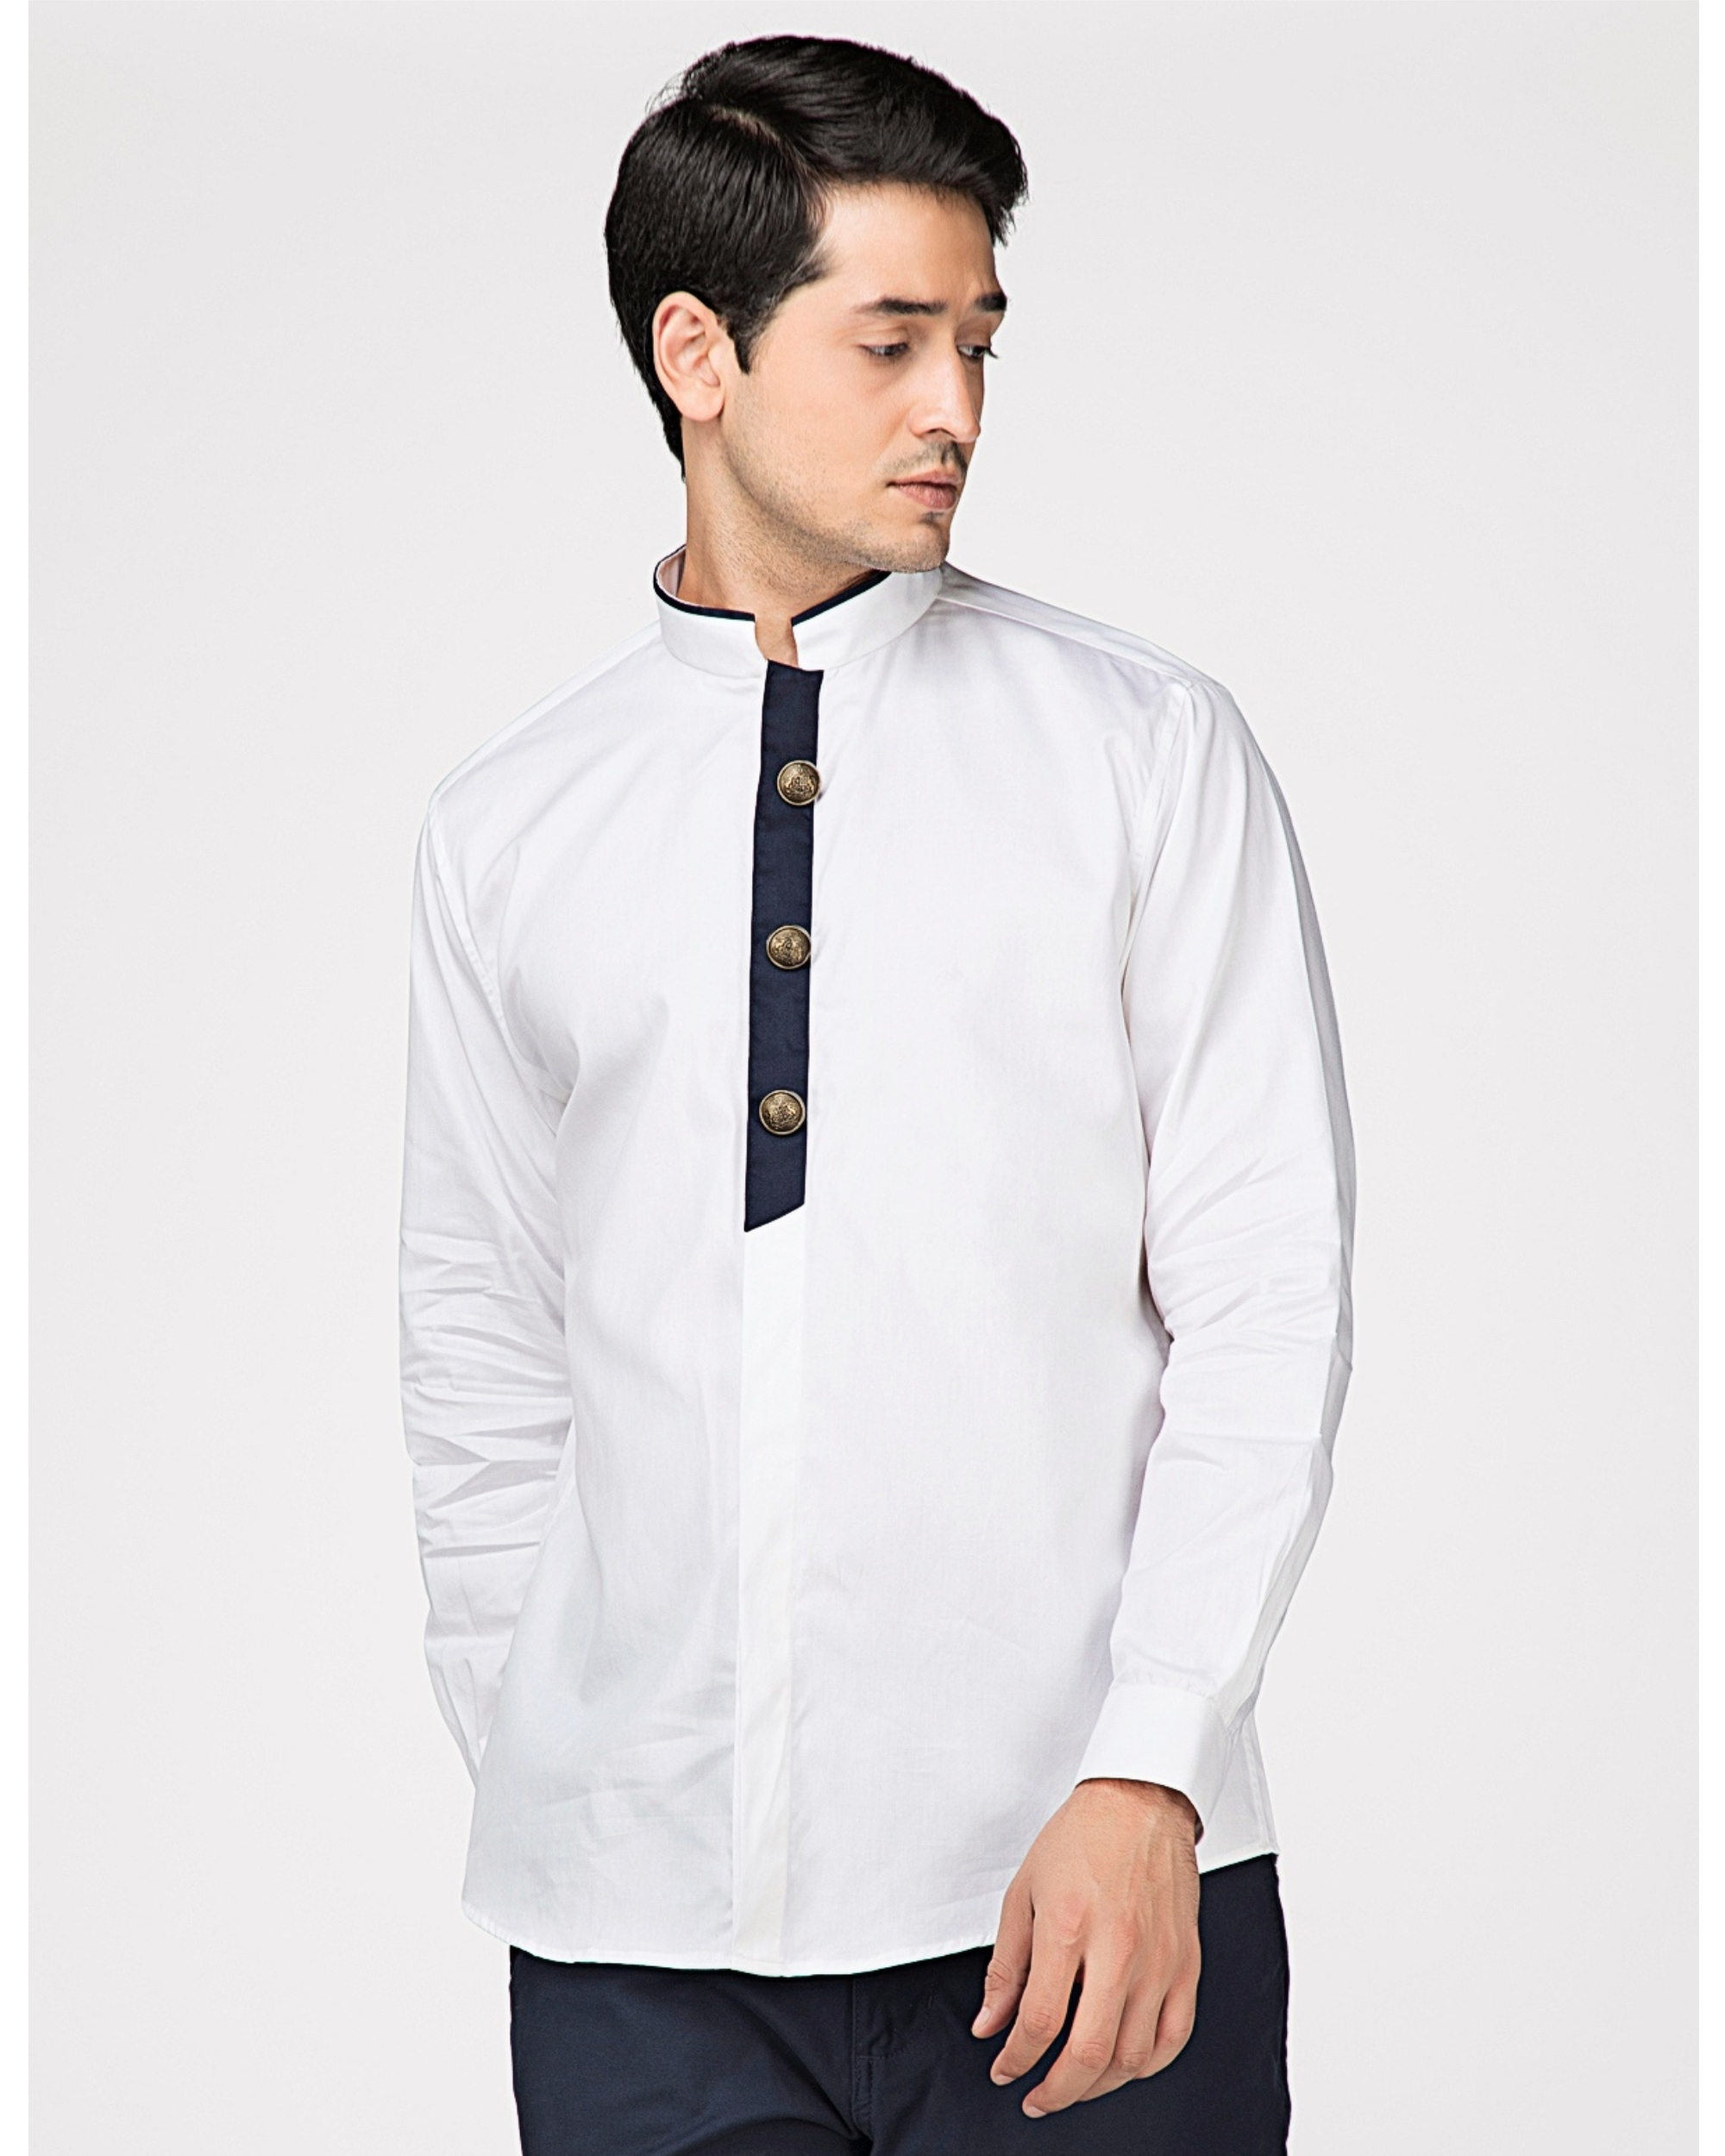 White ethnic shirt with contrast panel detailing